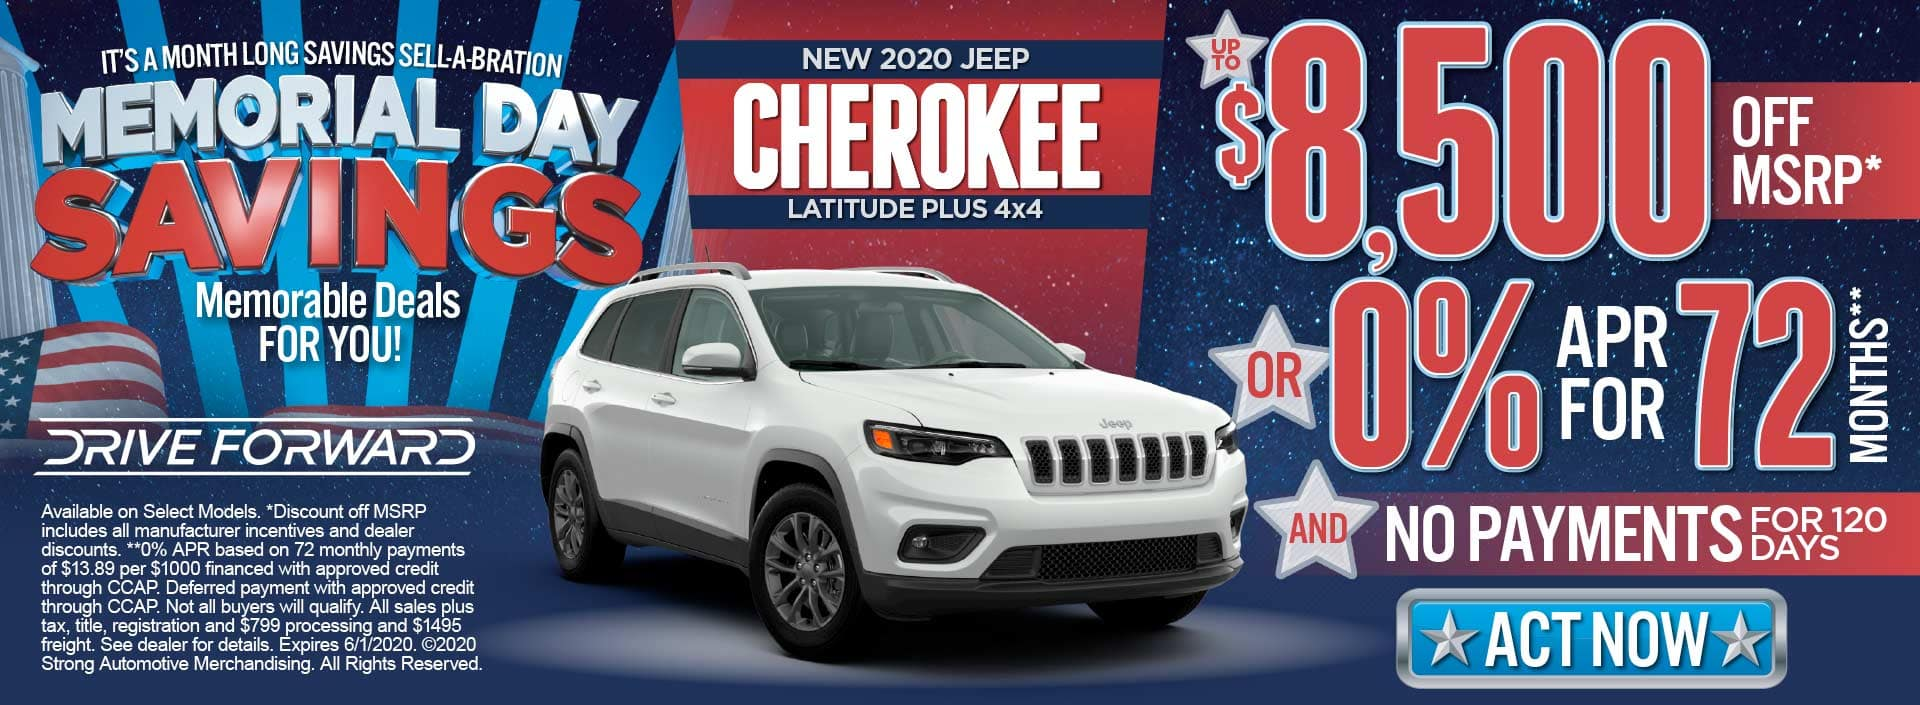 New jeep cherokee up to $8500 off msrp* or 0% for 72 mos** and no payments for 120 days*** act now